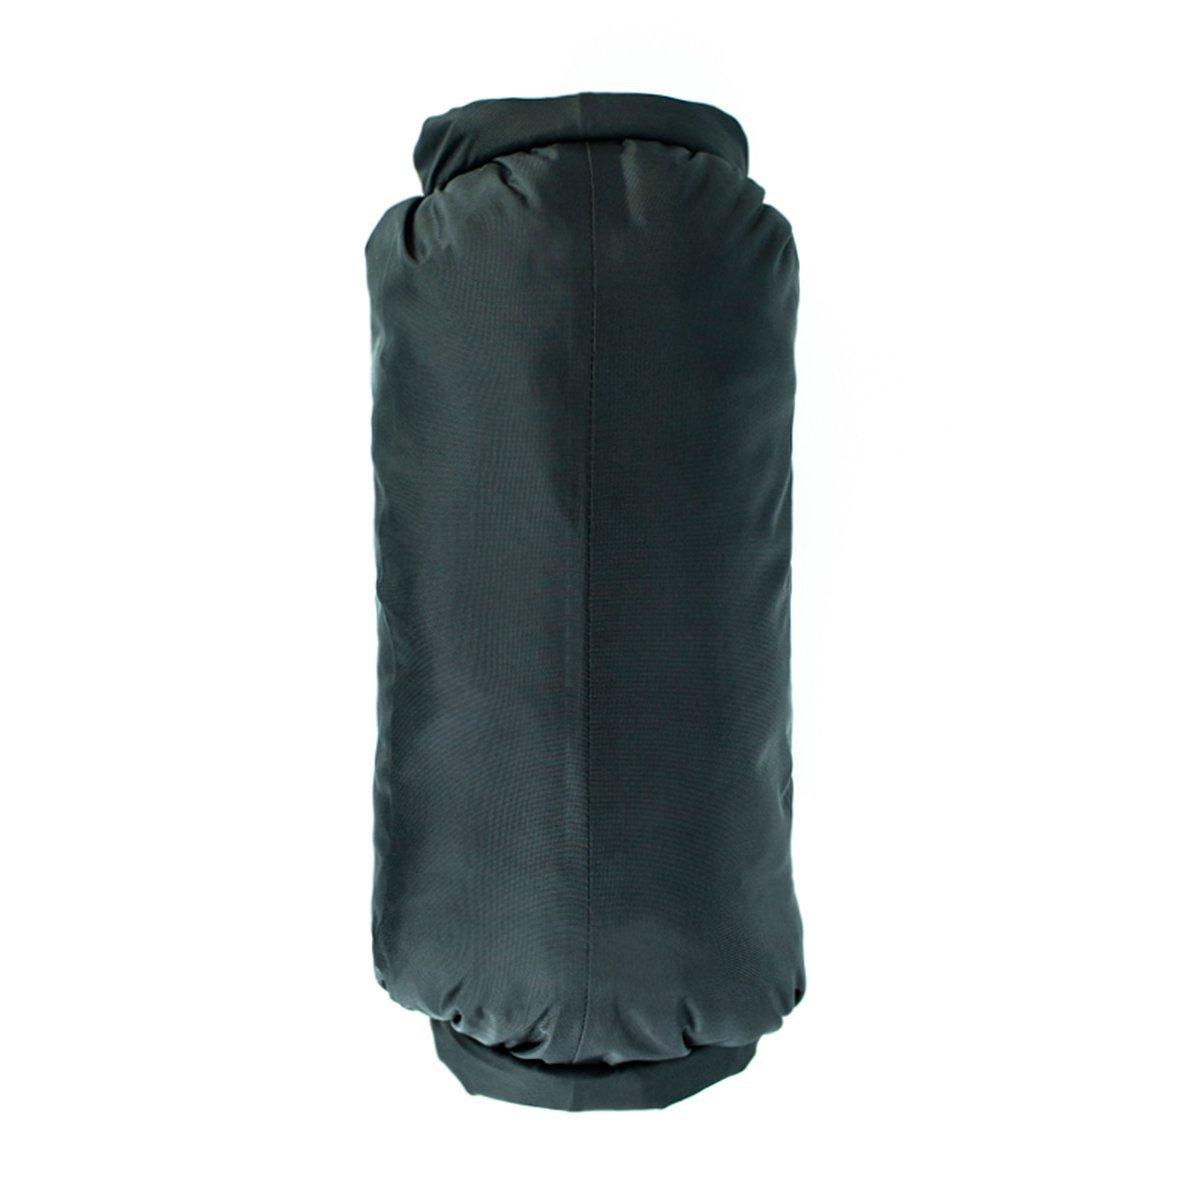 Dry Bag - Double Roll - 14L